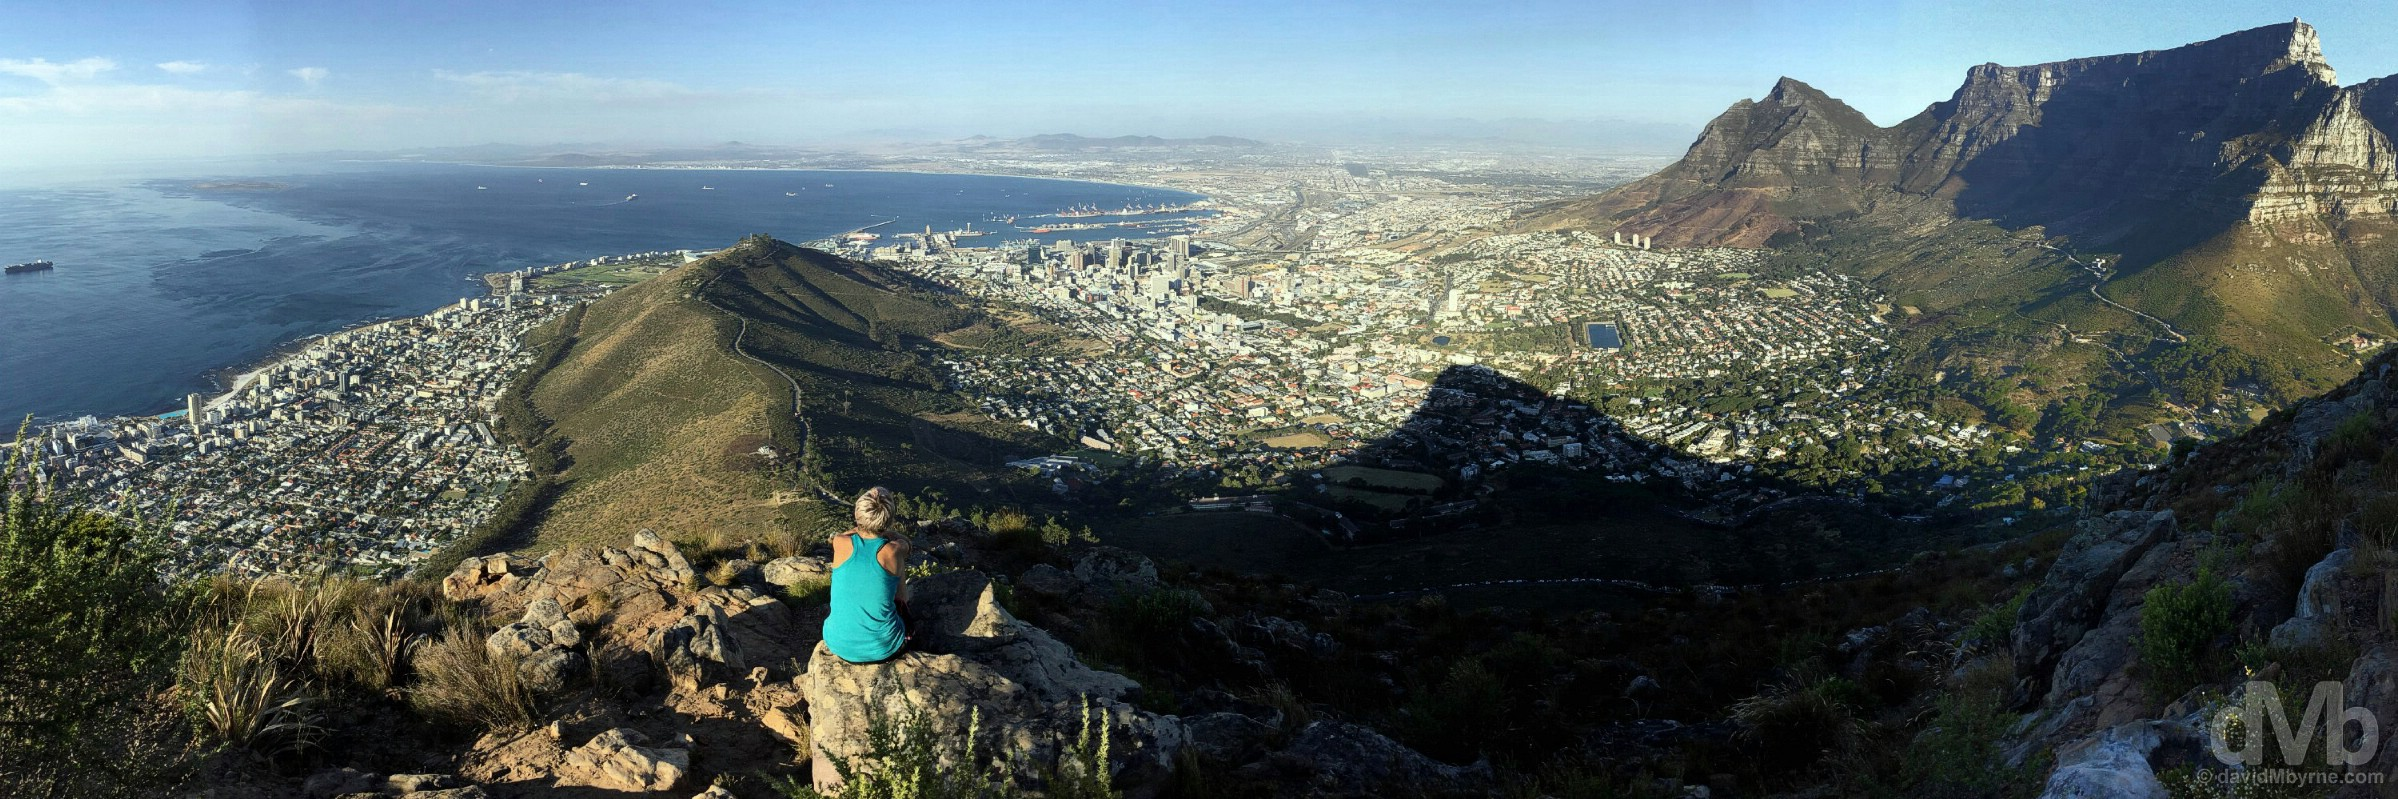 Enjoying the late afternoon view over Table Bay & Cape Town from atop Lion's Head, Western Cape, South Africa. February 22, 2017.